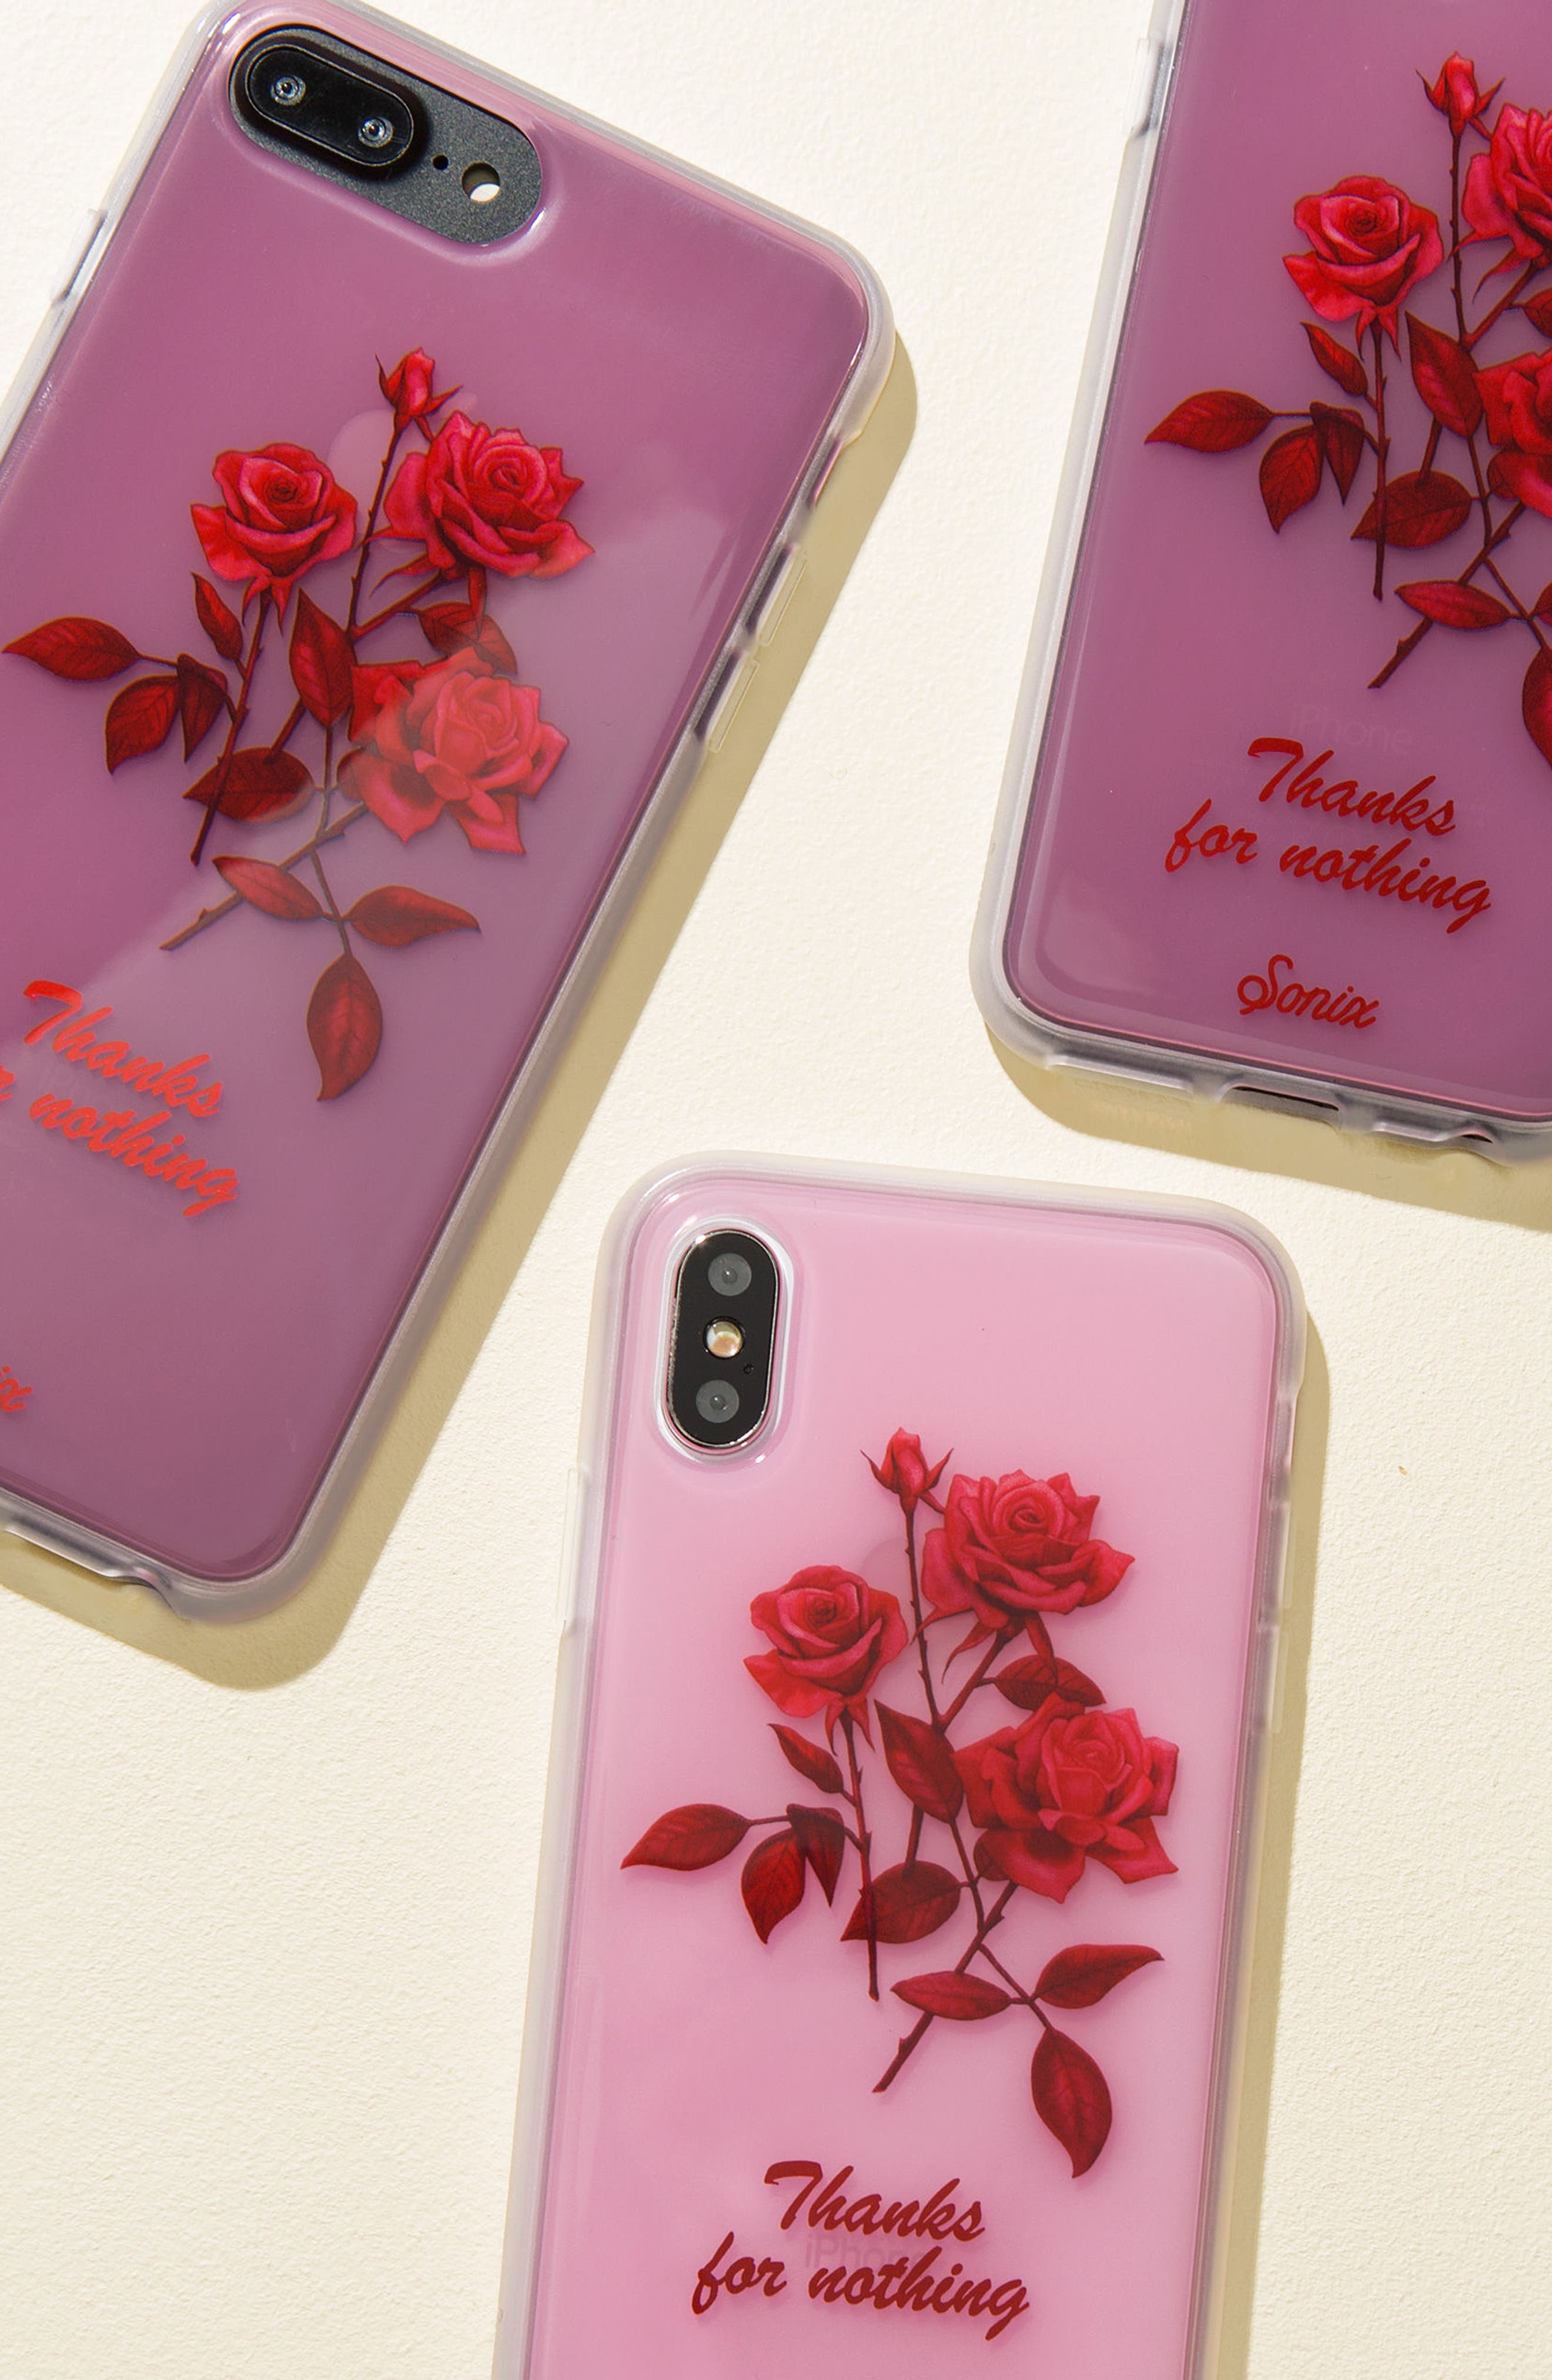 Thanks for Nothing iPhone 6/6s/7/8 & 6/6s/7/8 Plus Case,                             Alternate thumbnail 2, color,                             Pink/ Red